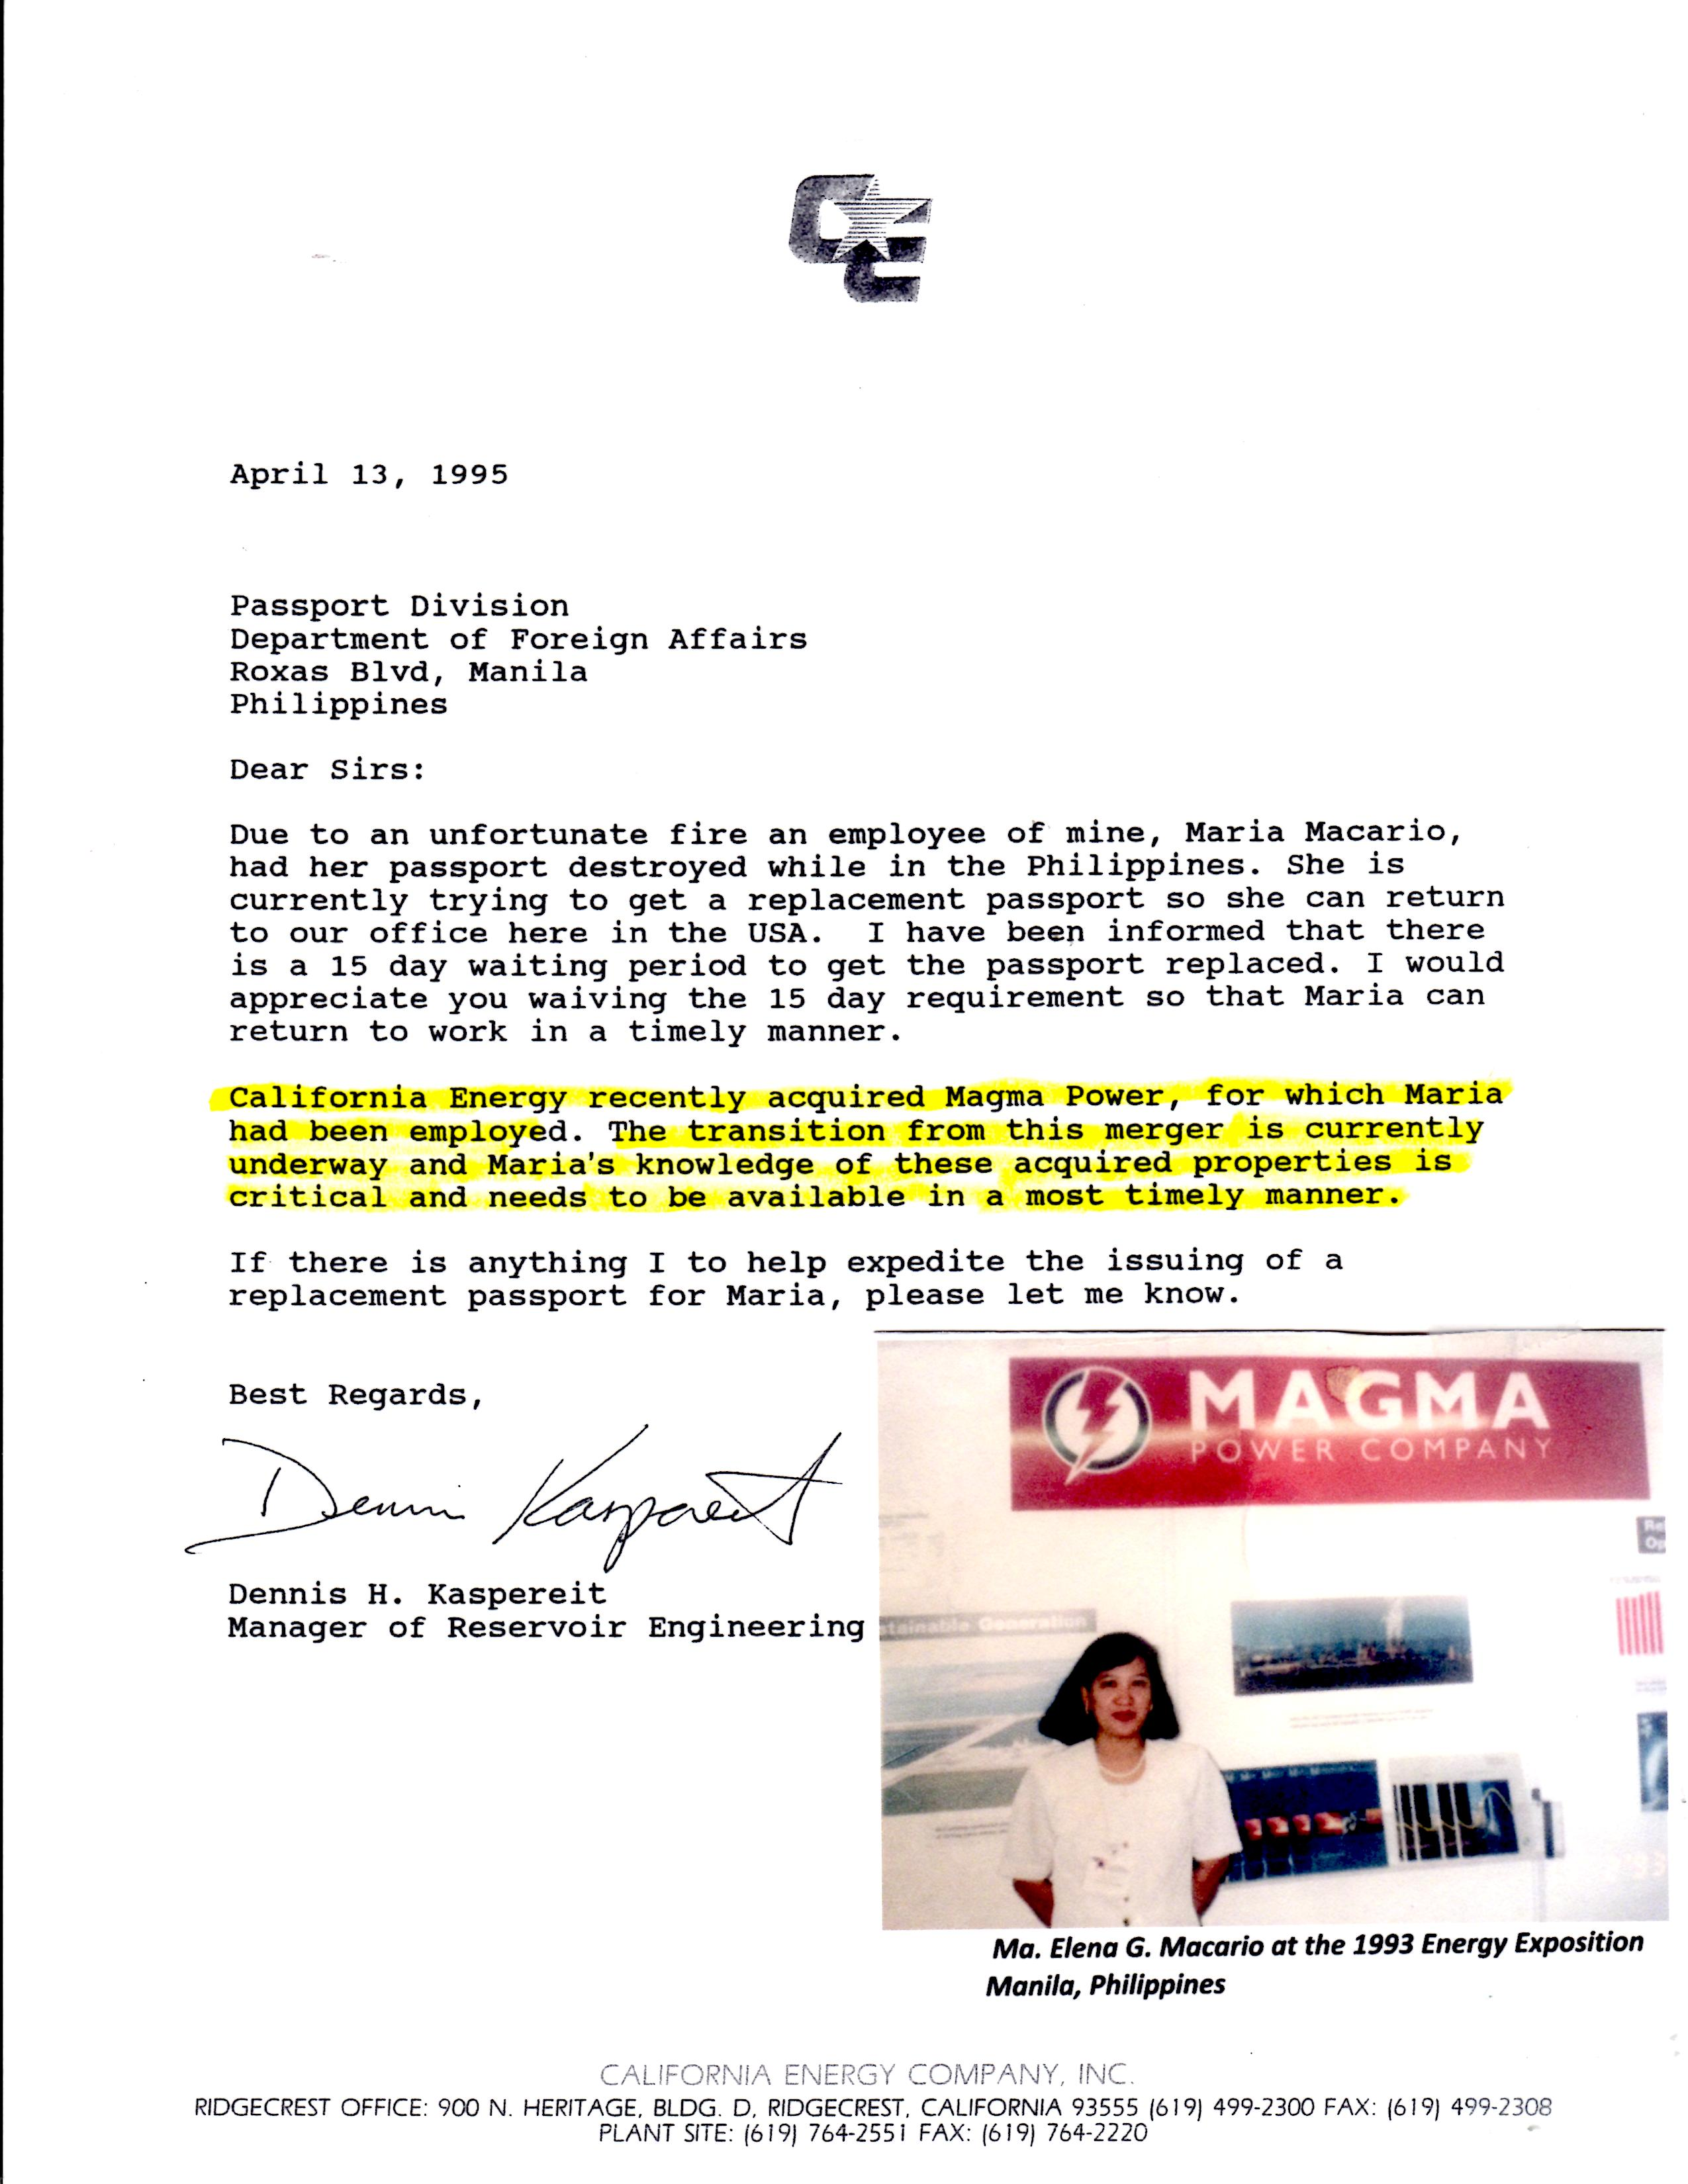 CalEnergy Letter to Phil. Dept. of Foreign Affairs signed by Dennis Kapereit Elena's Manager 04-13-1995